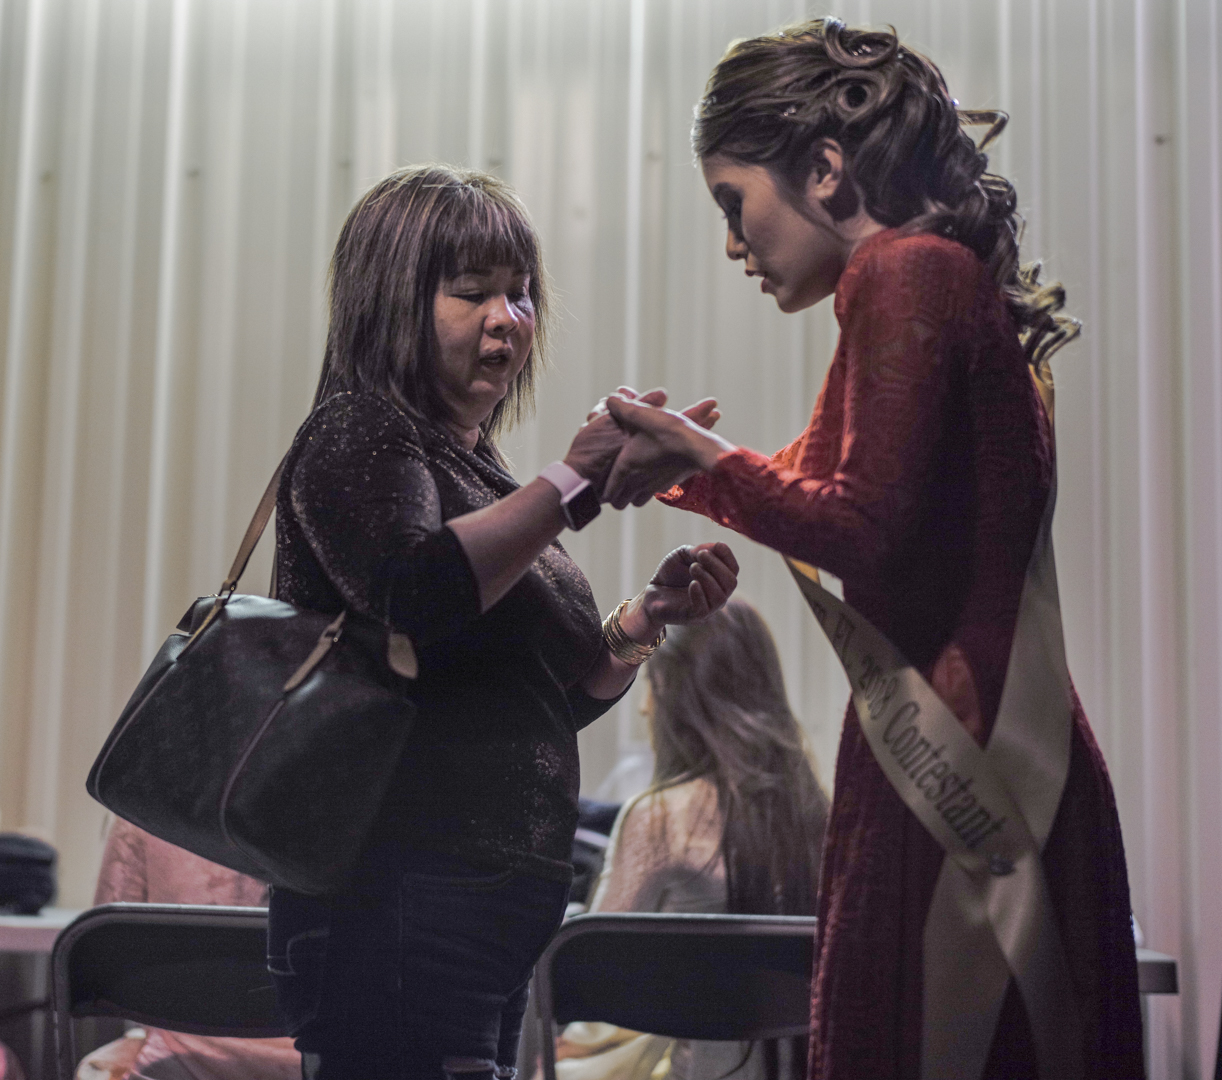 Nhung Hồng Phan shares a moment of prayer with her mother backstage moments before the show began.